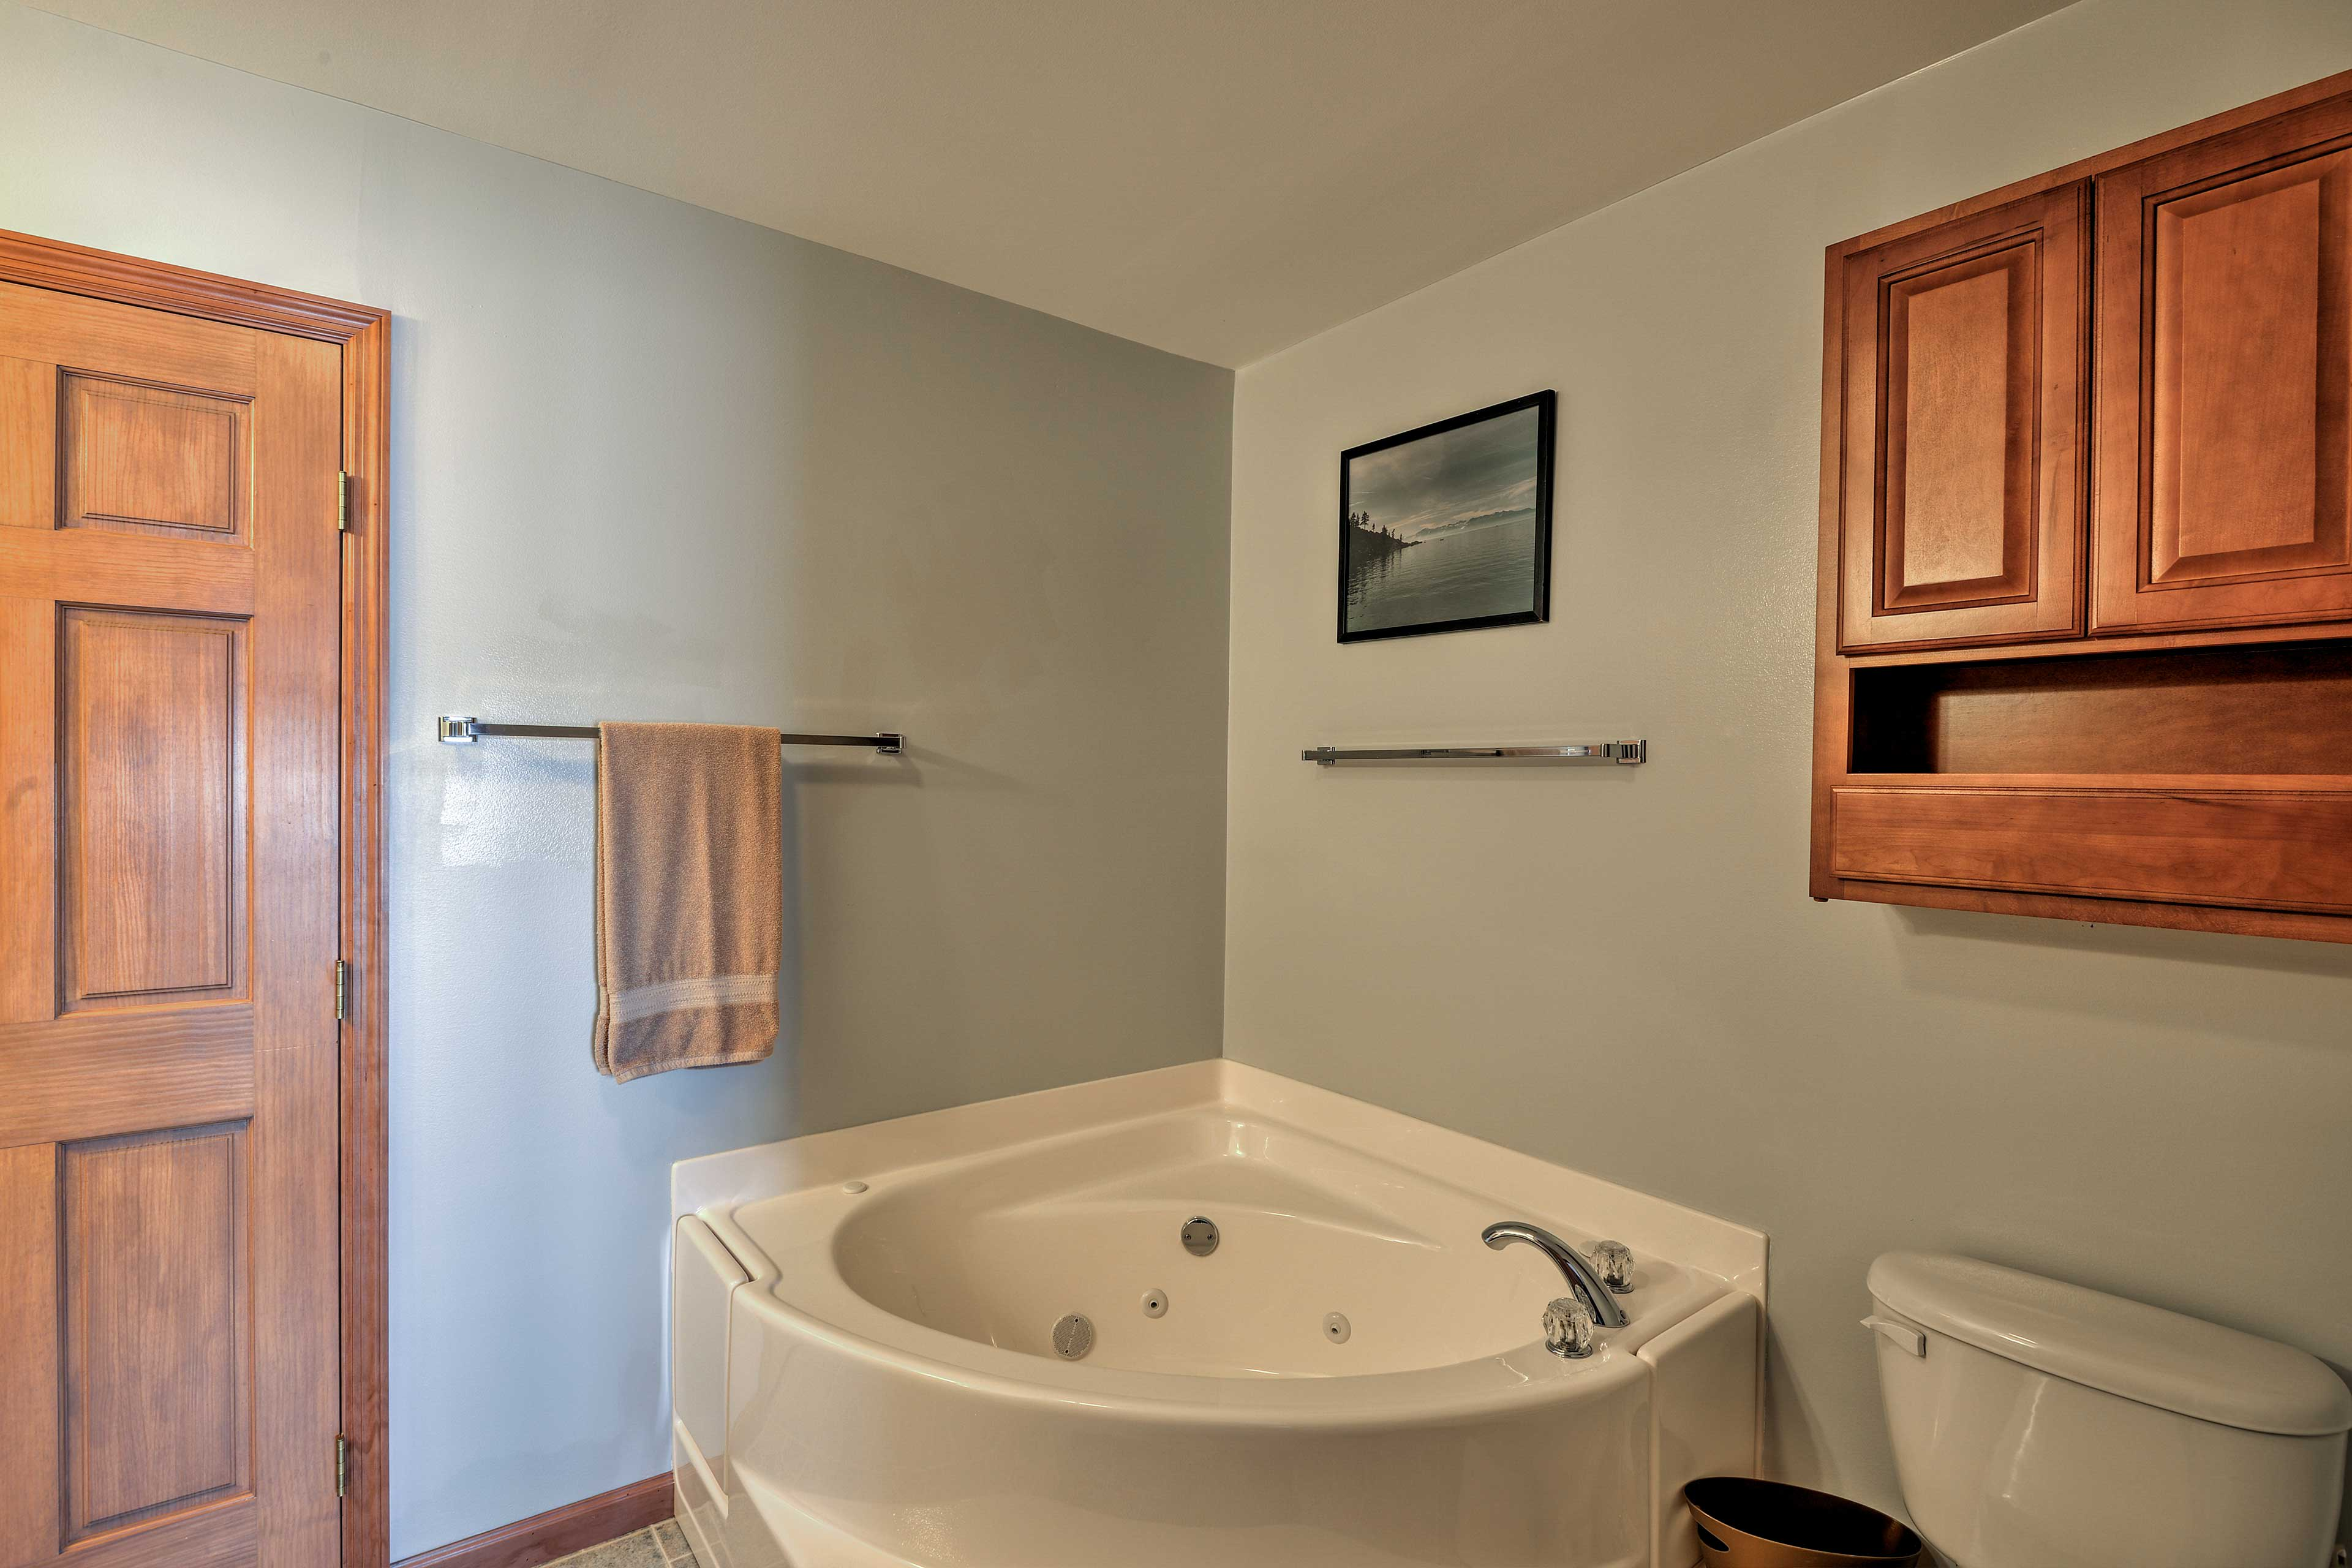 After a day on the trails, take a relaxing soak in the jetted tub.